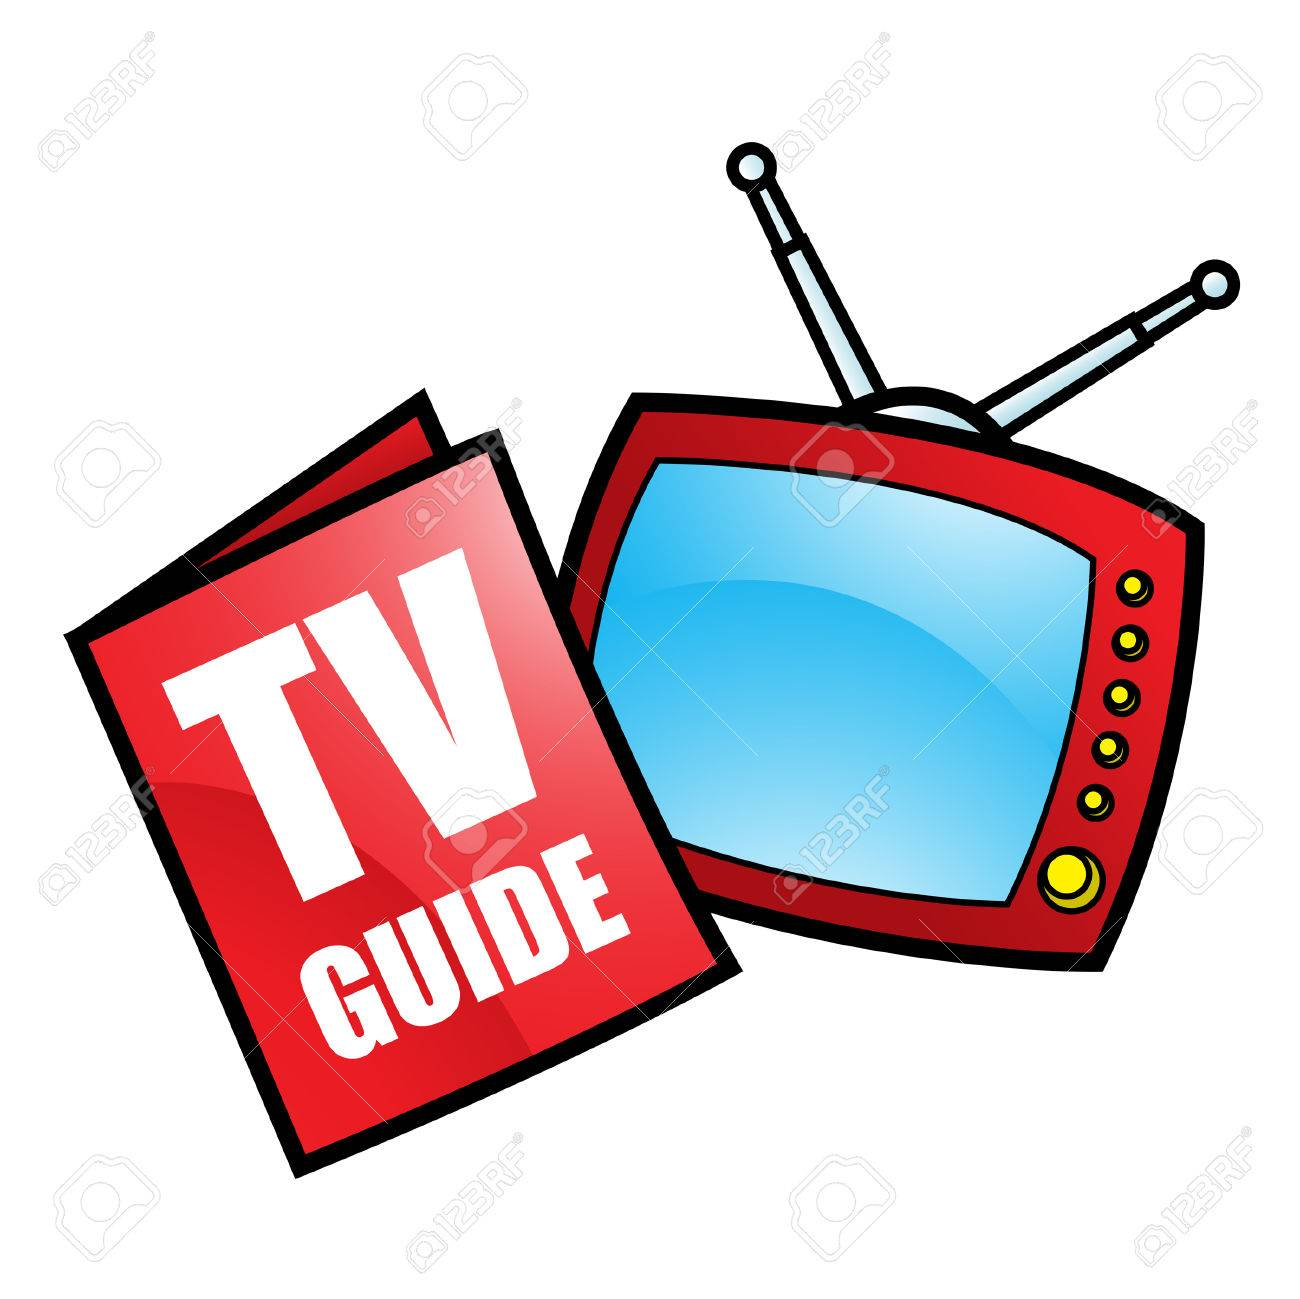 Illustration of TV Guide and Television isolated on a white background - 23638119